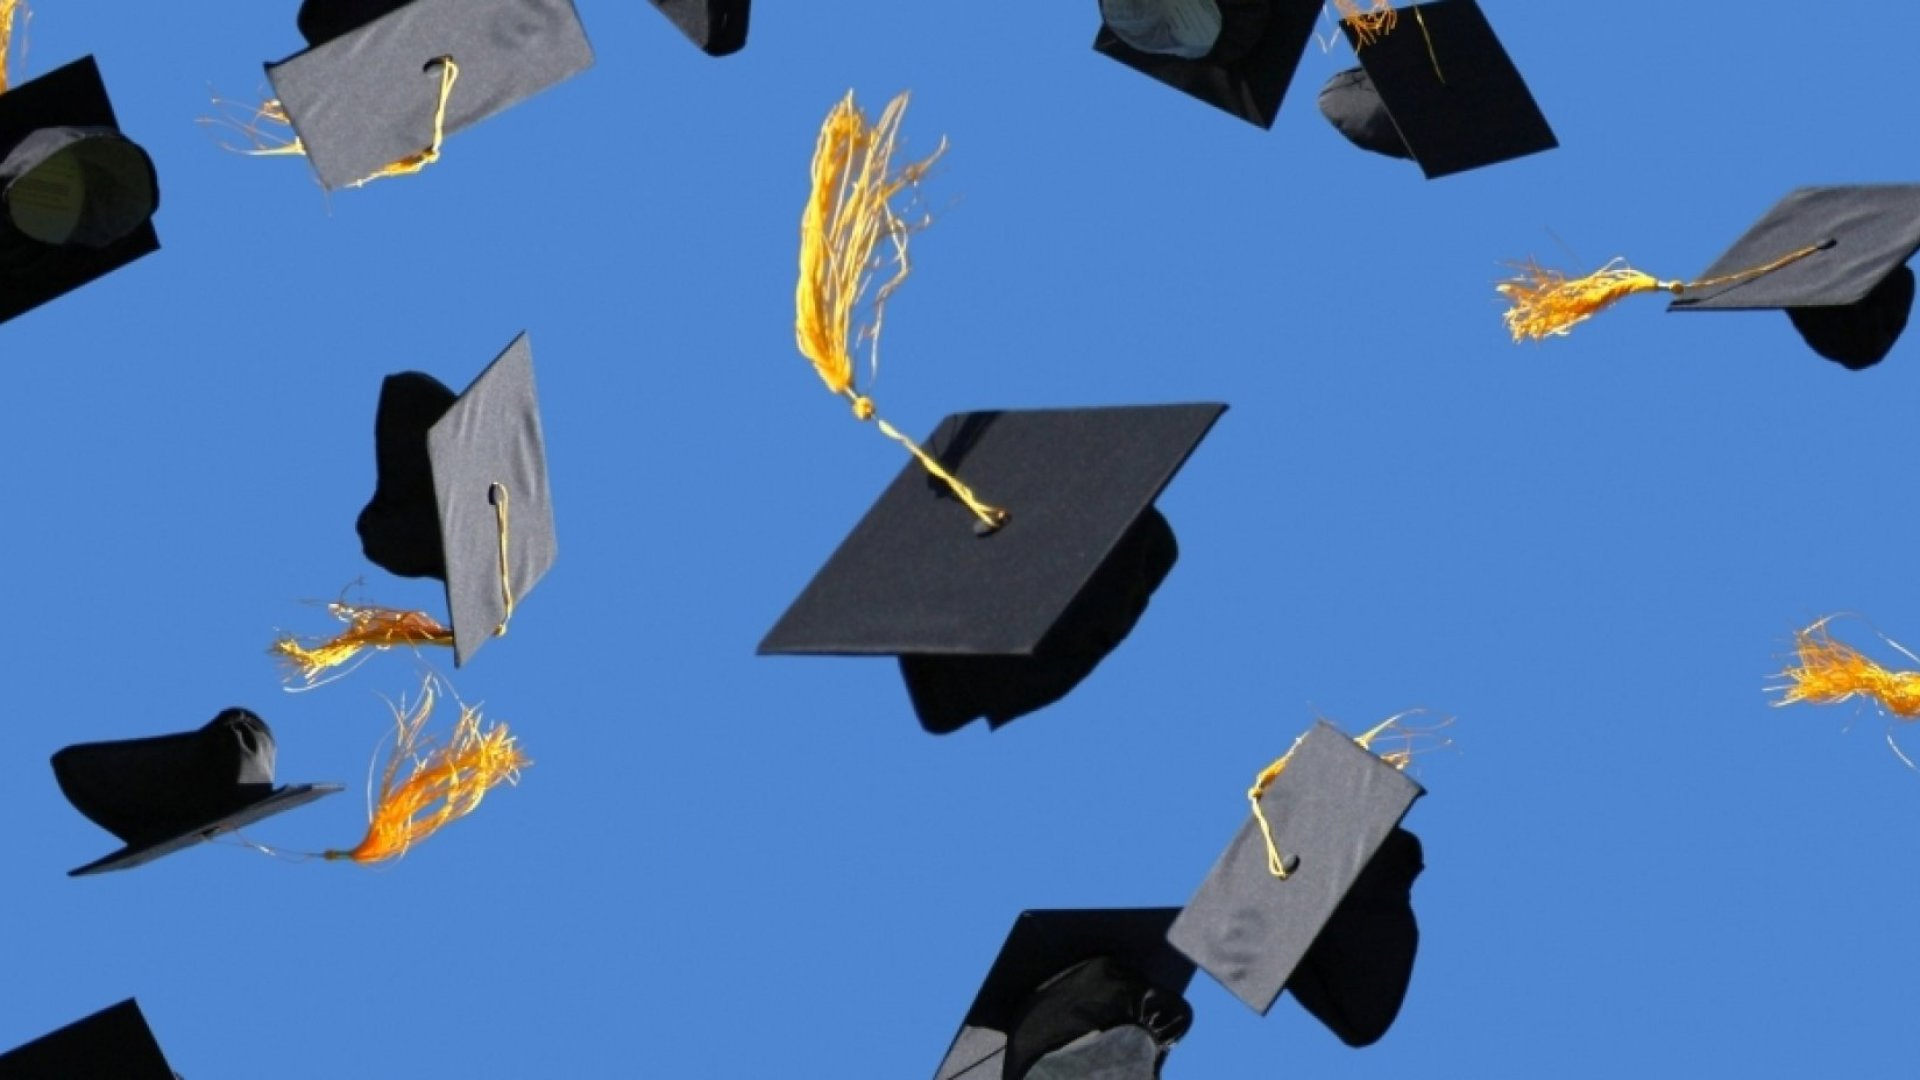 I've Hired New Grads for 8 Years. The Most Successful Understood This Critical Lesson